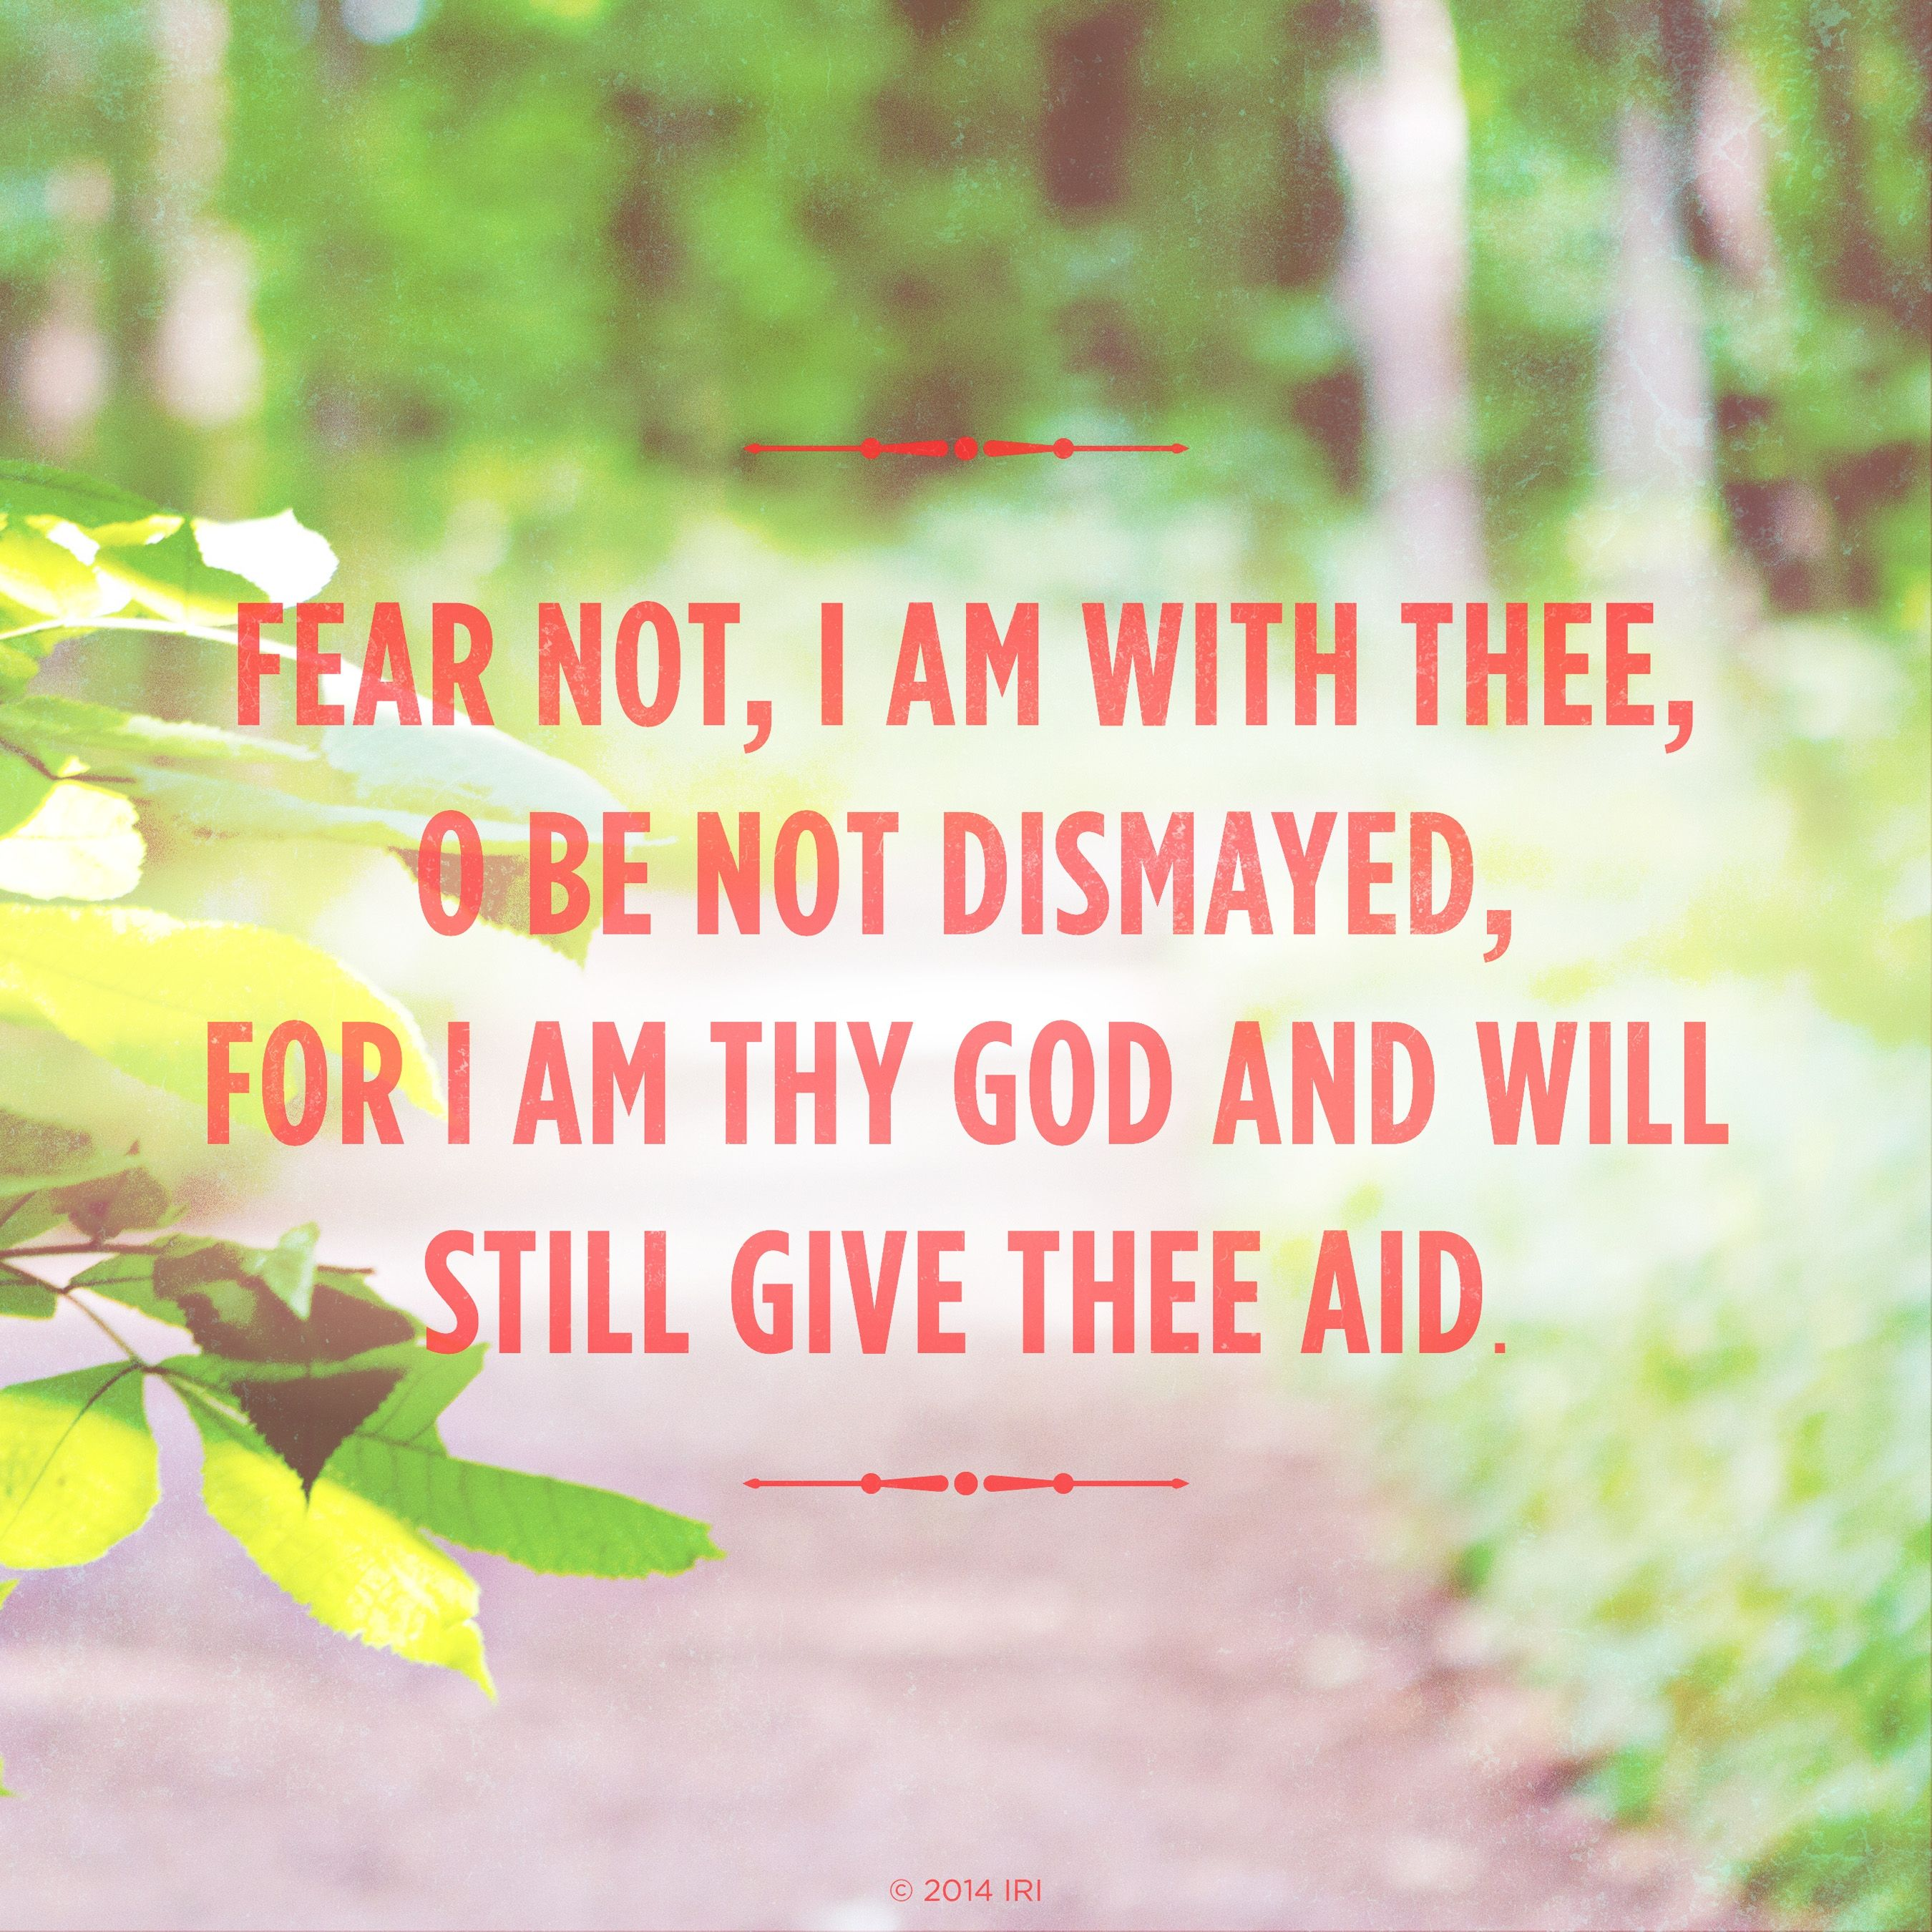 """""""Fear not, I am with thee; oh, be not dismayed, for I am thy God and will still give thee aid.""""—Hymns, no. 85, """"How Firm a Foundation"""""""